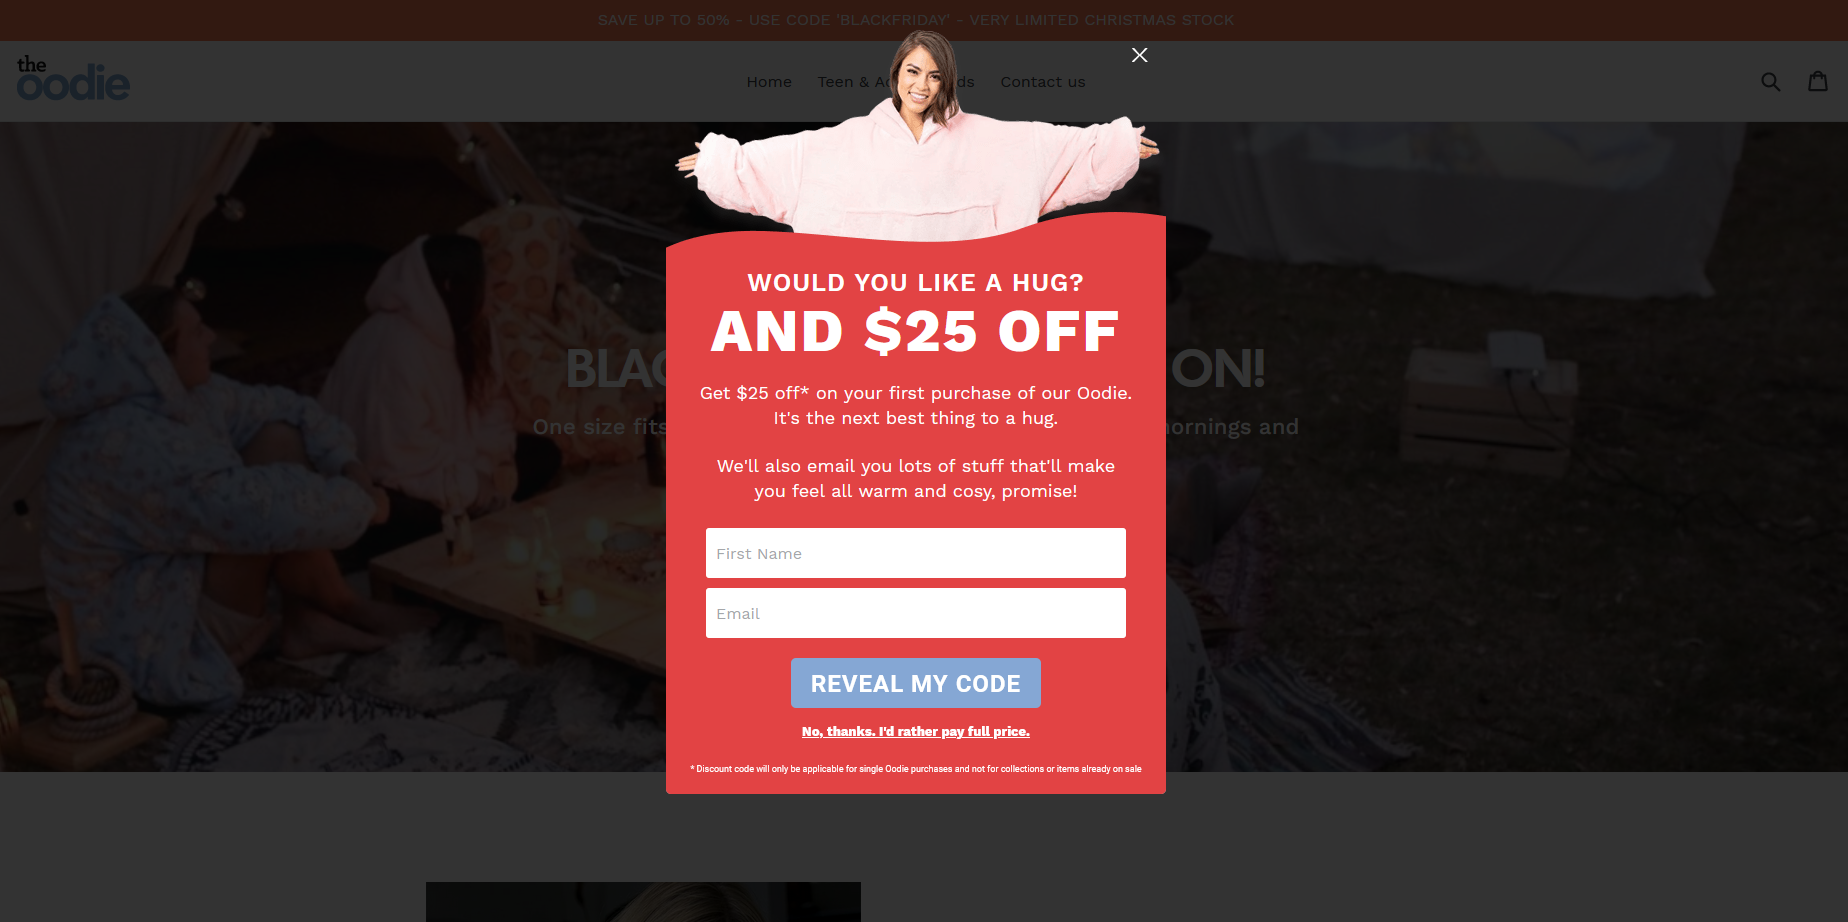 Shopify popup image